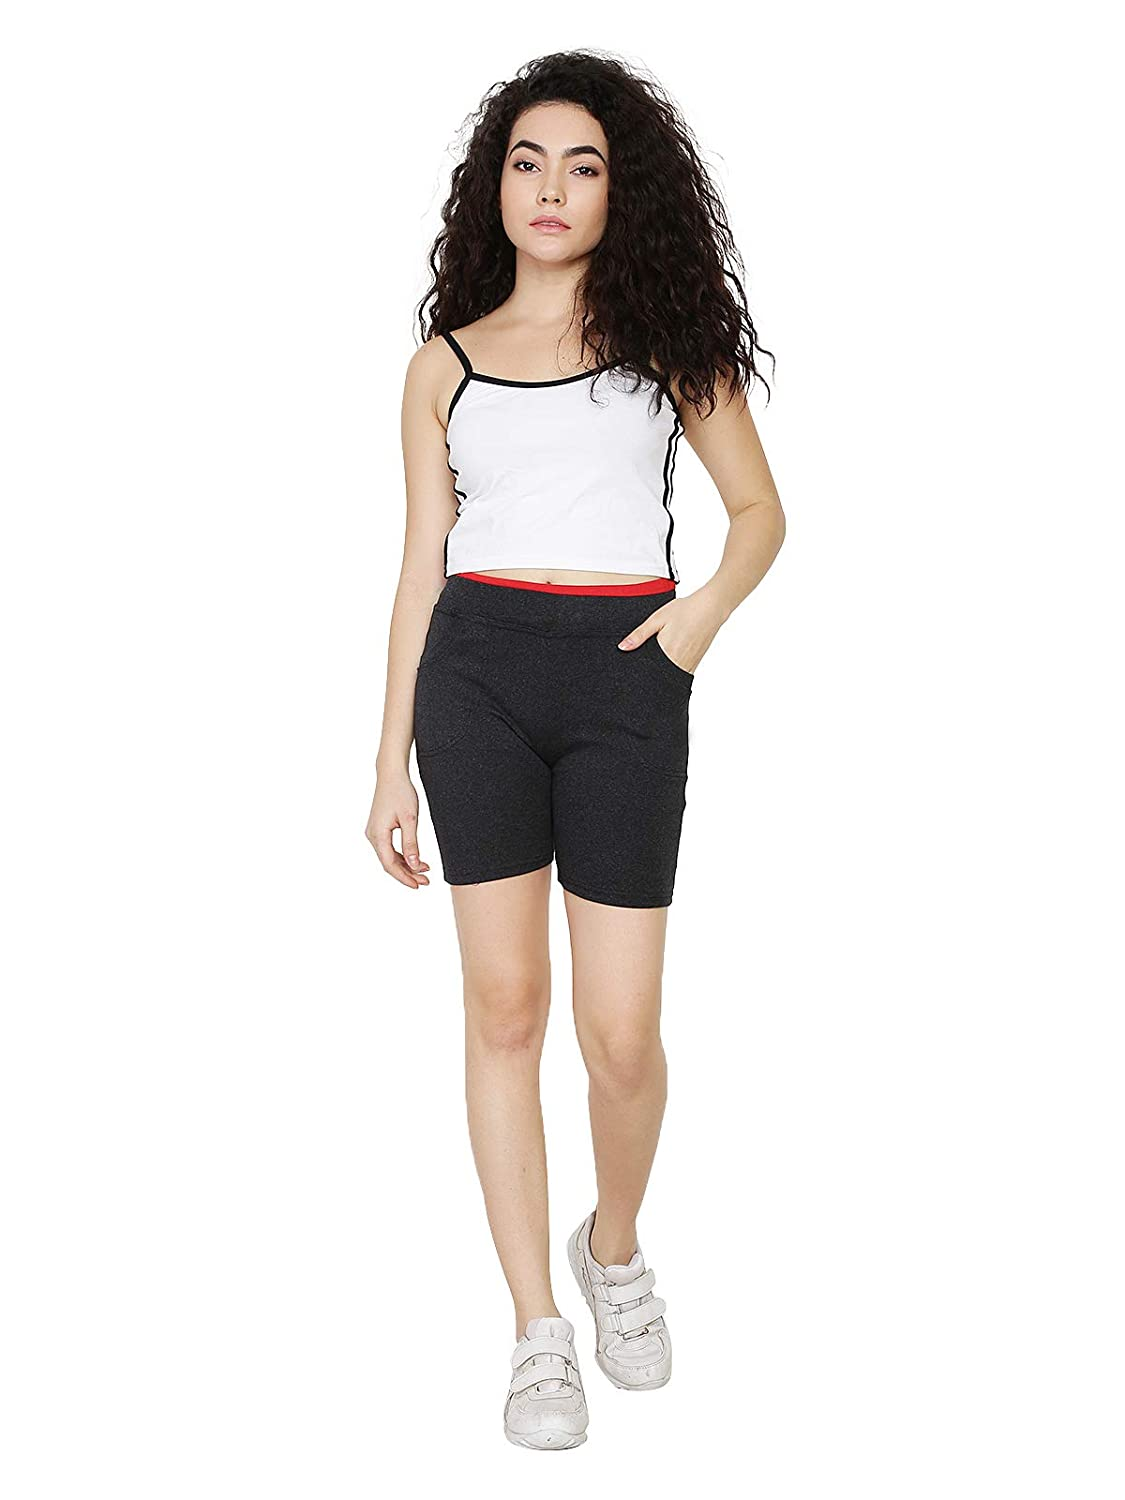 Buy waooo Short Pants| Half Pants for Women Girls | Shorts for Cycling,  Gym, Yoga, Size (Free Size) Black at Amazon.in